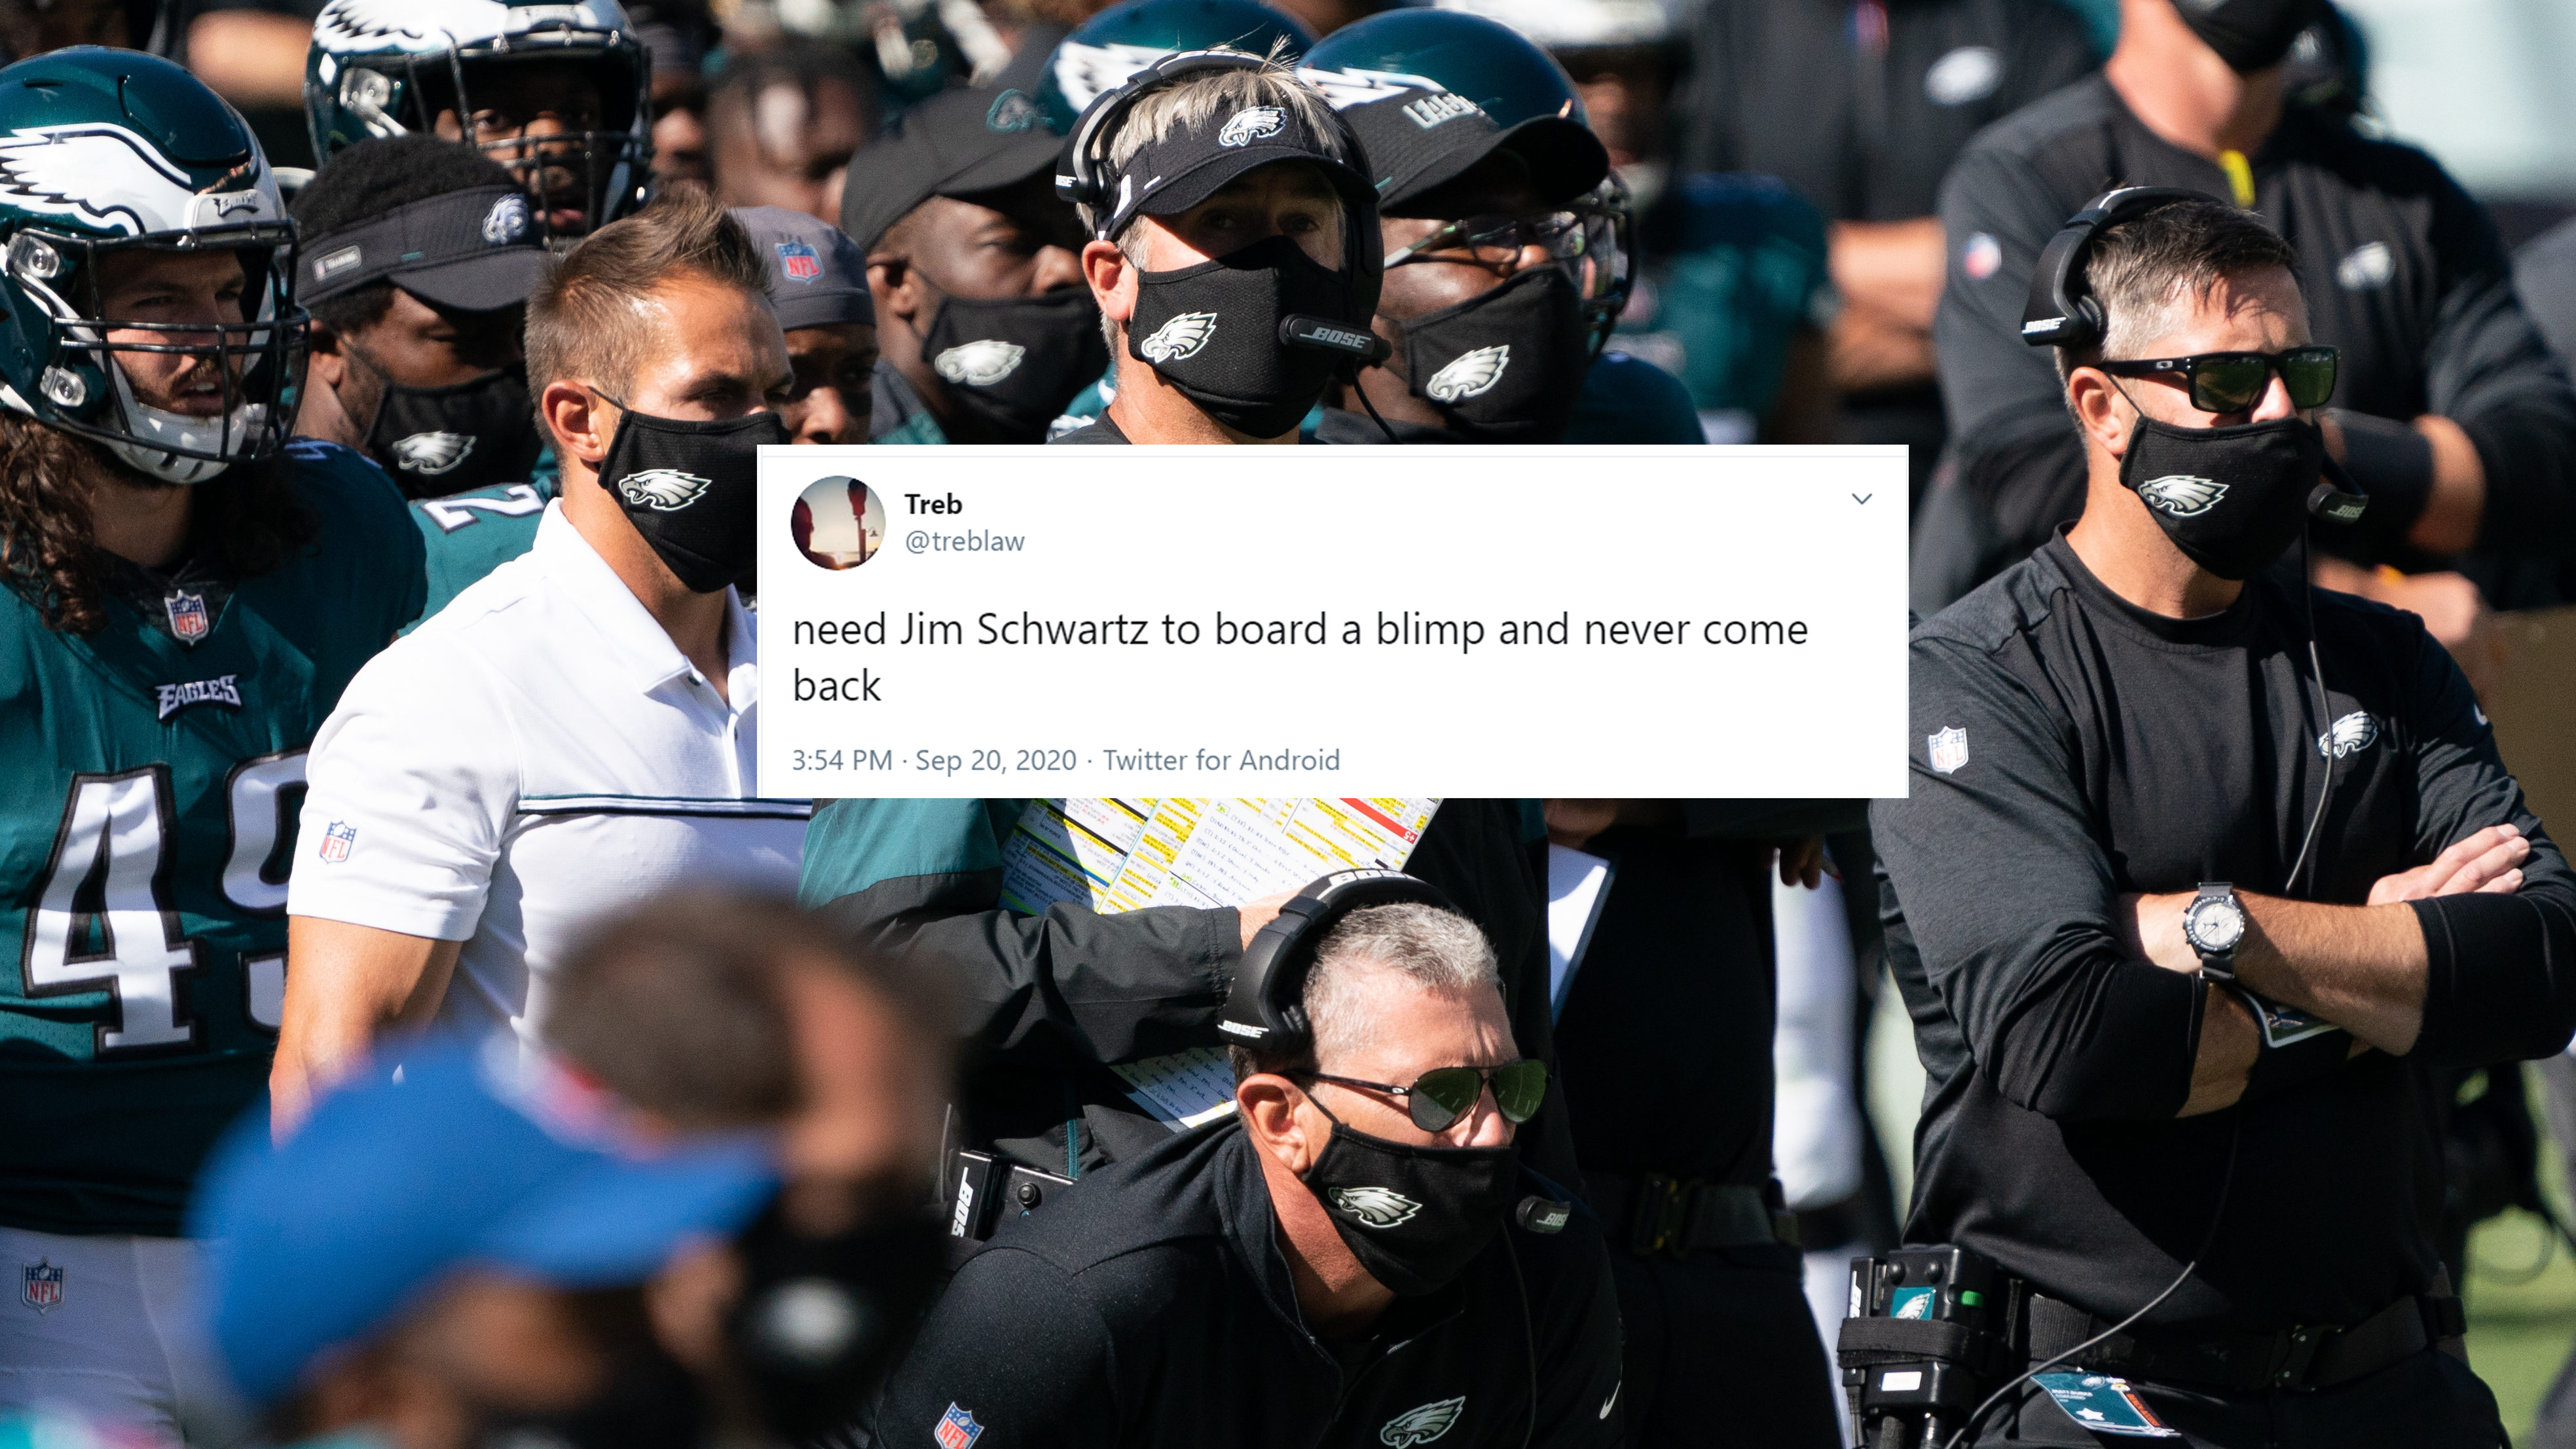 Eagles starting 0-2 has fans in full meltdown mode after ugly Rams loss